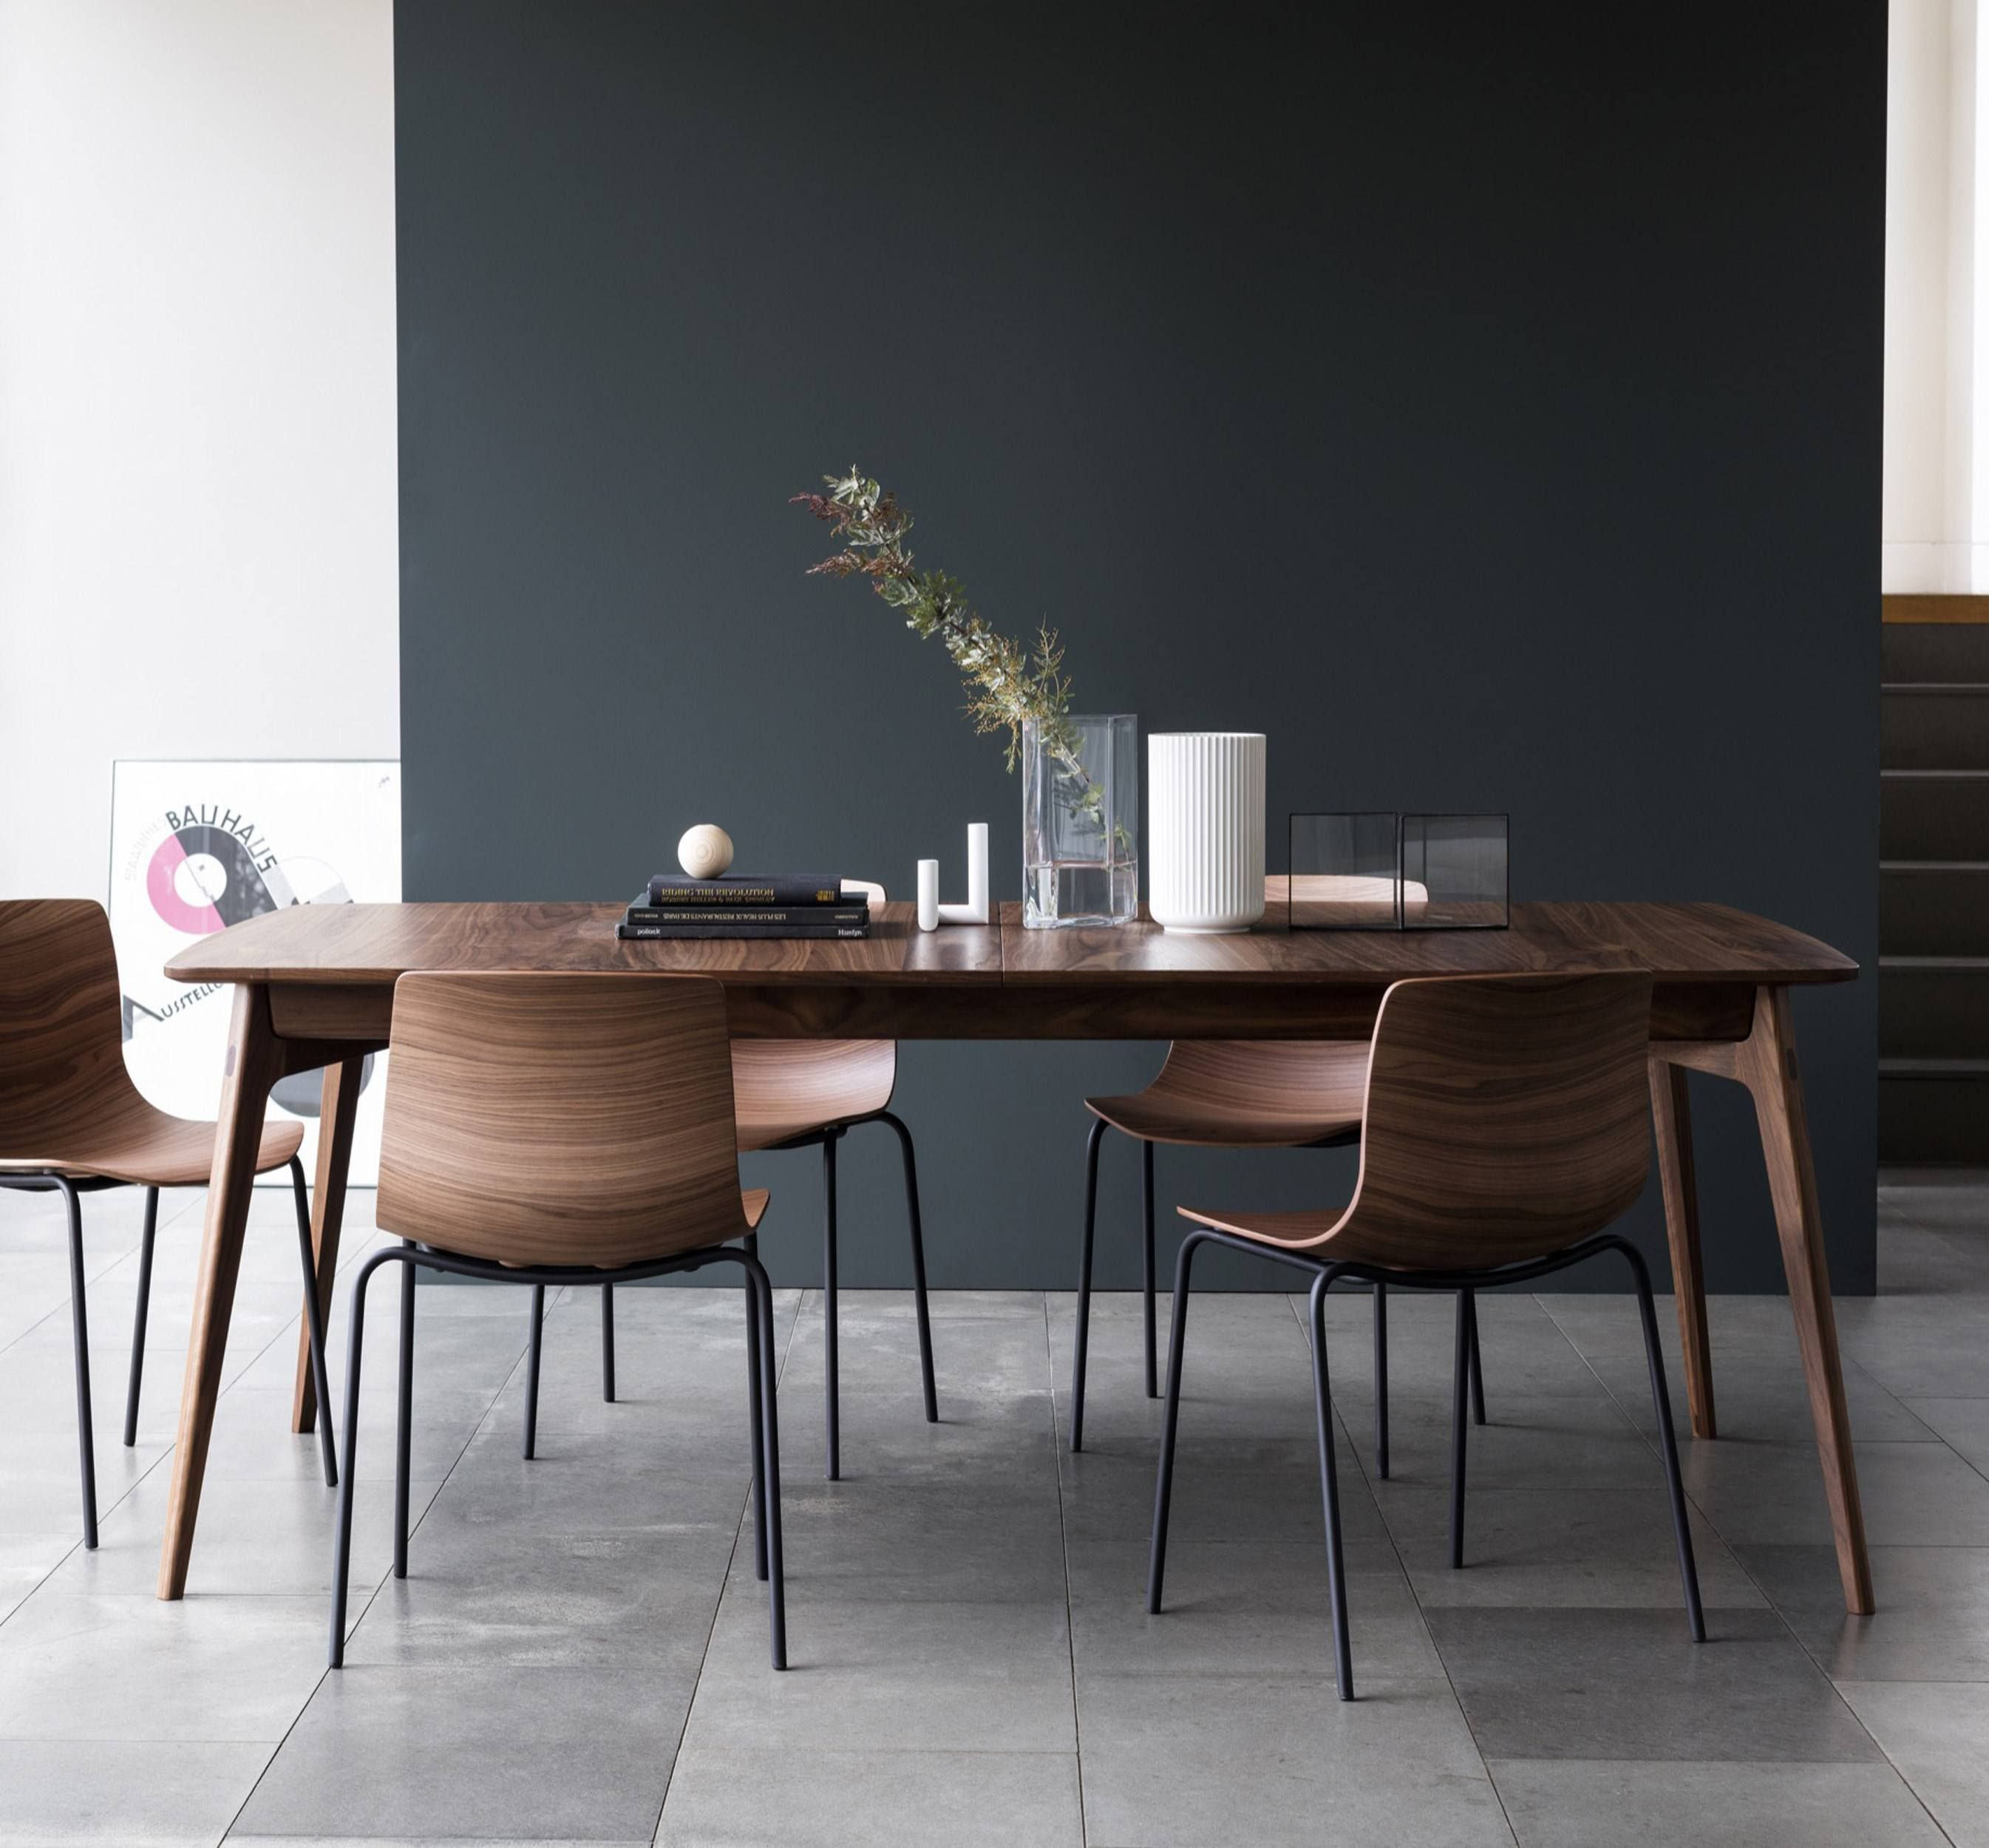 Hilton Furniture Living Room Sets Seating Arrangements The Dulwich Dining Table Is An Elegant Extending Designed By Matthew Solid Wood Legs And Under Frame Supports Generous Width Top